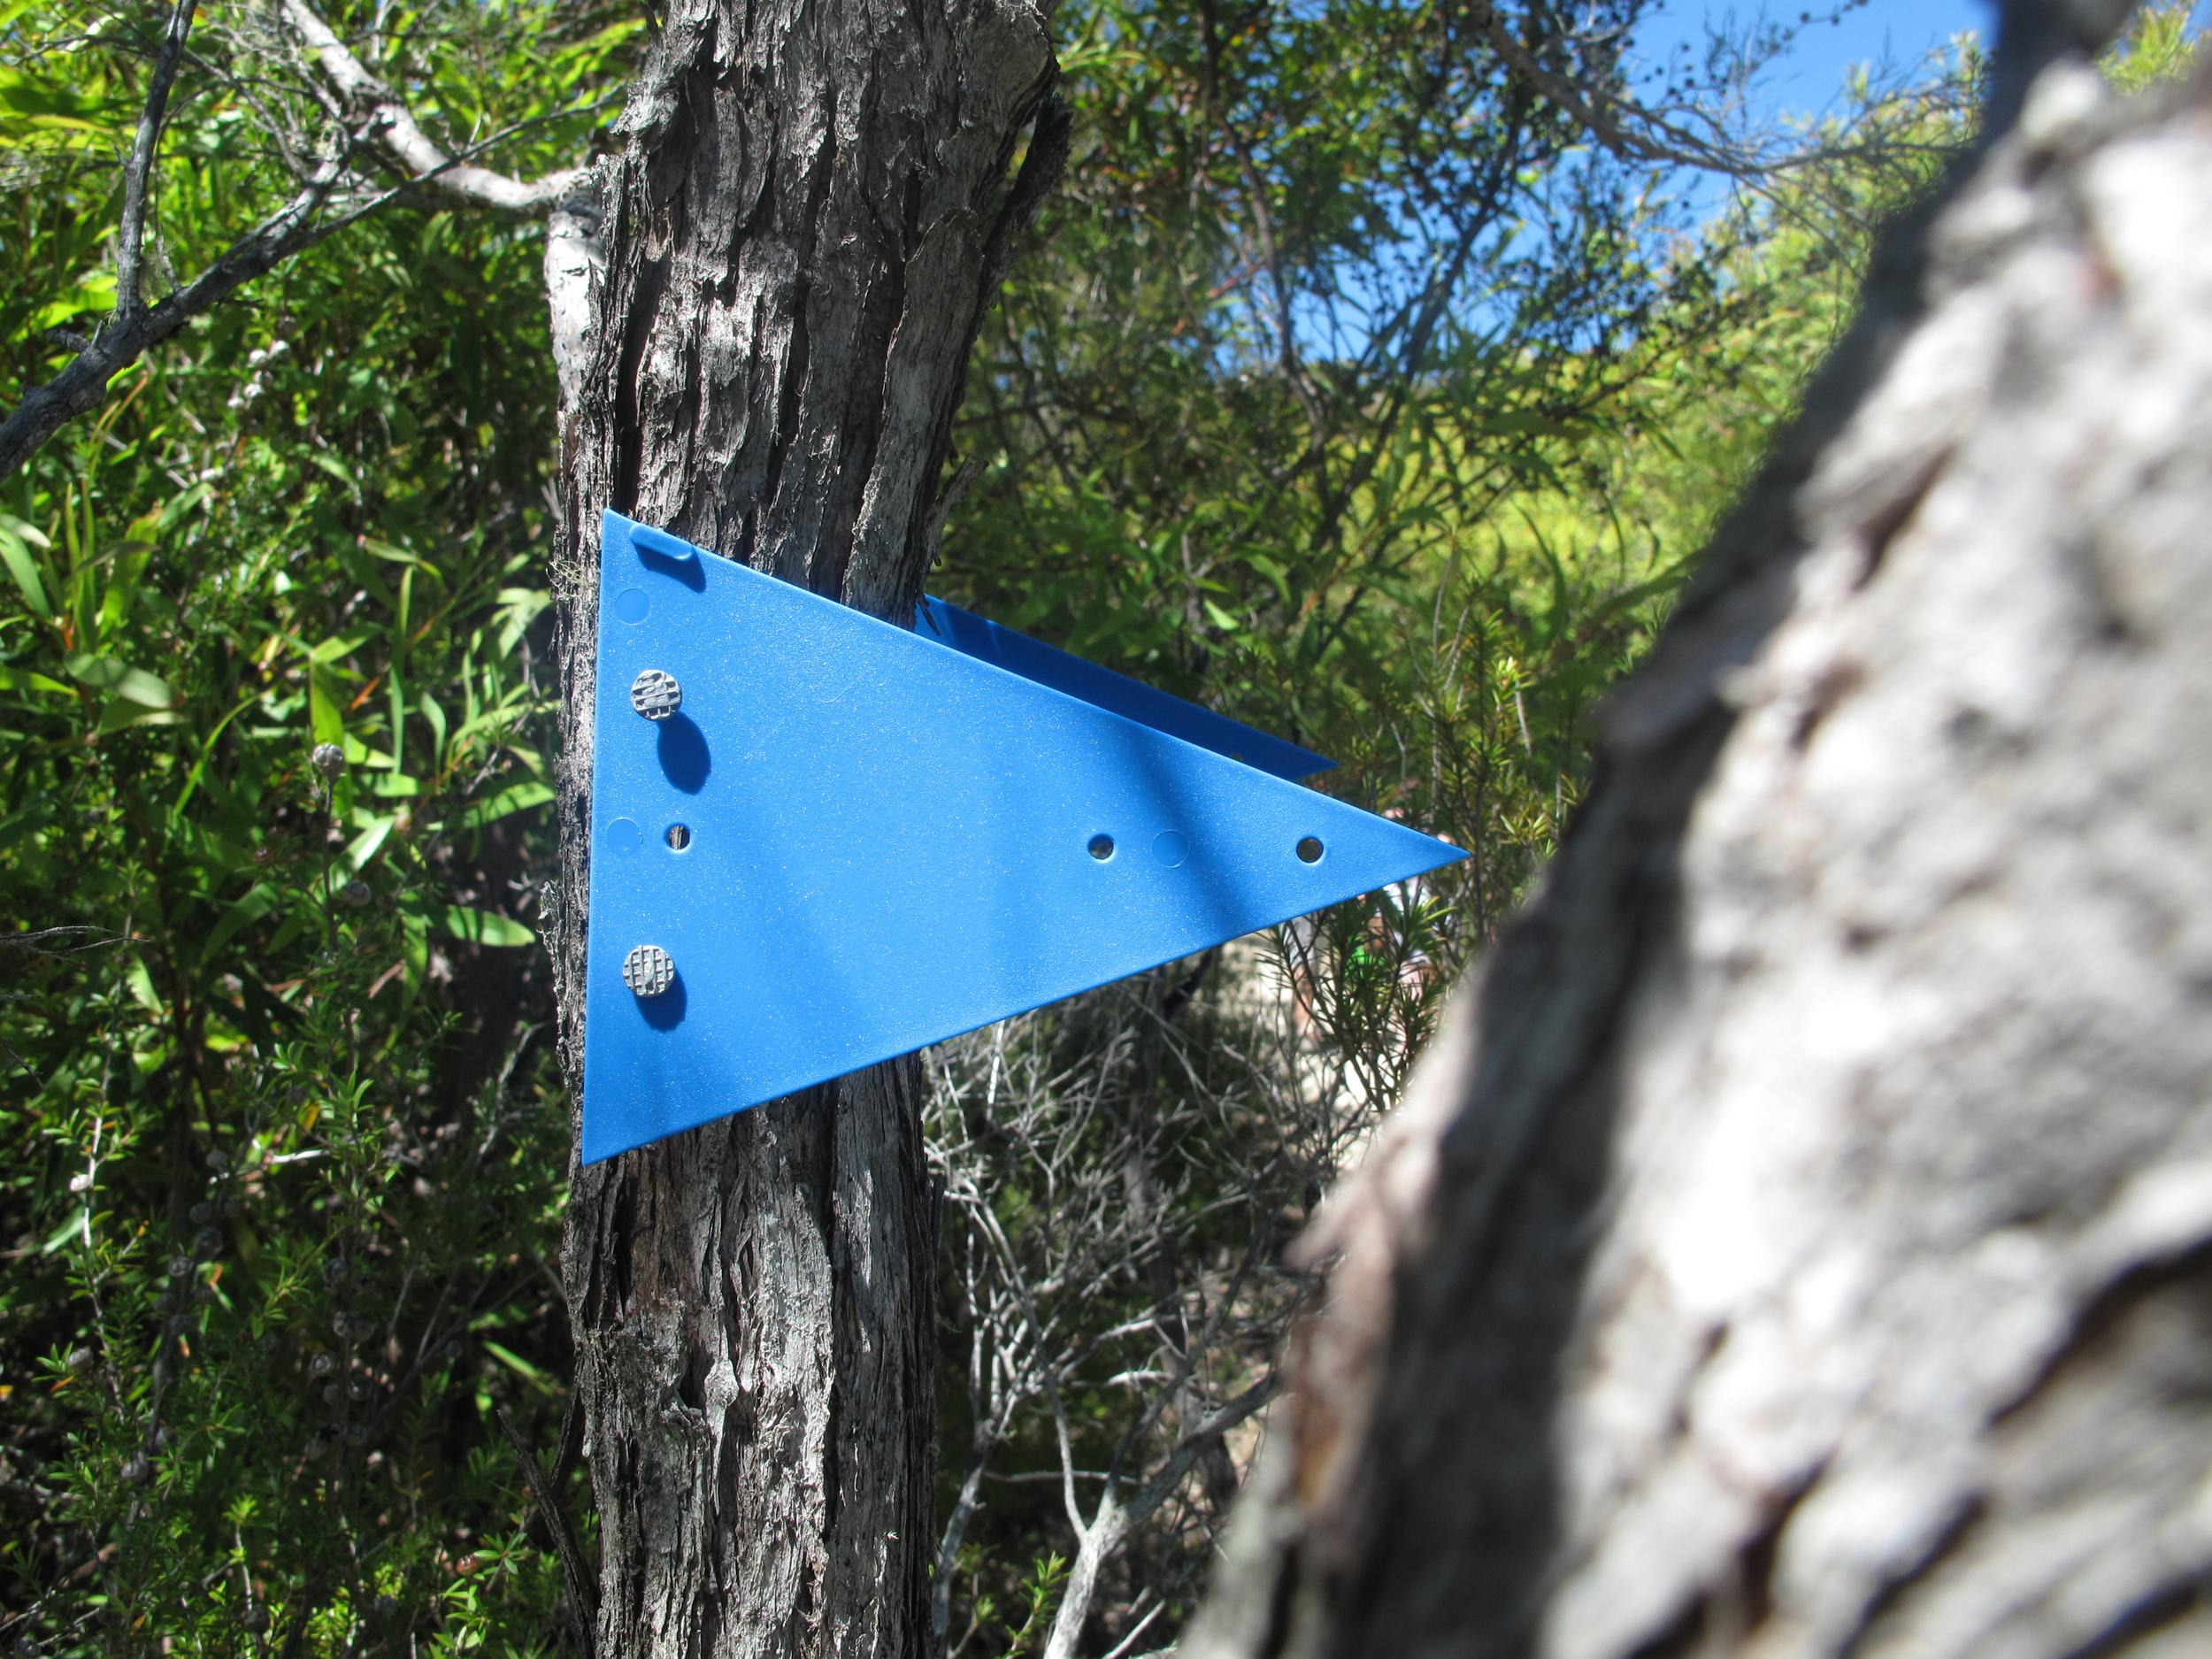 The Able Tasman trail markers